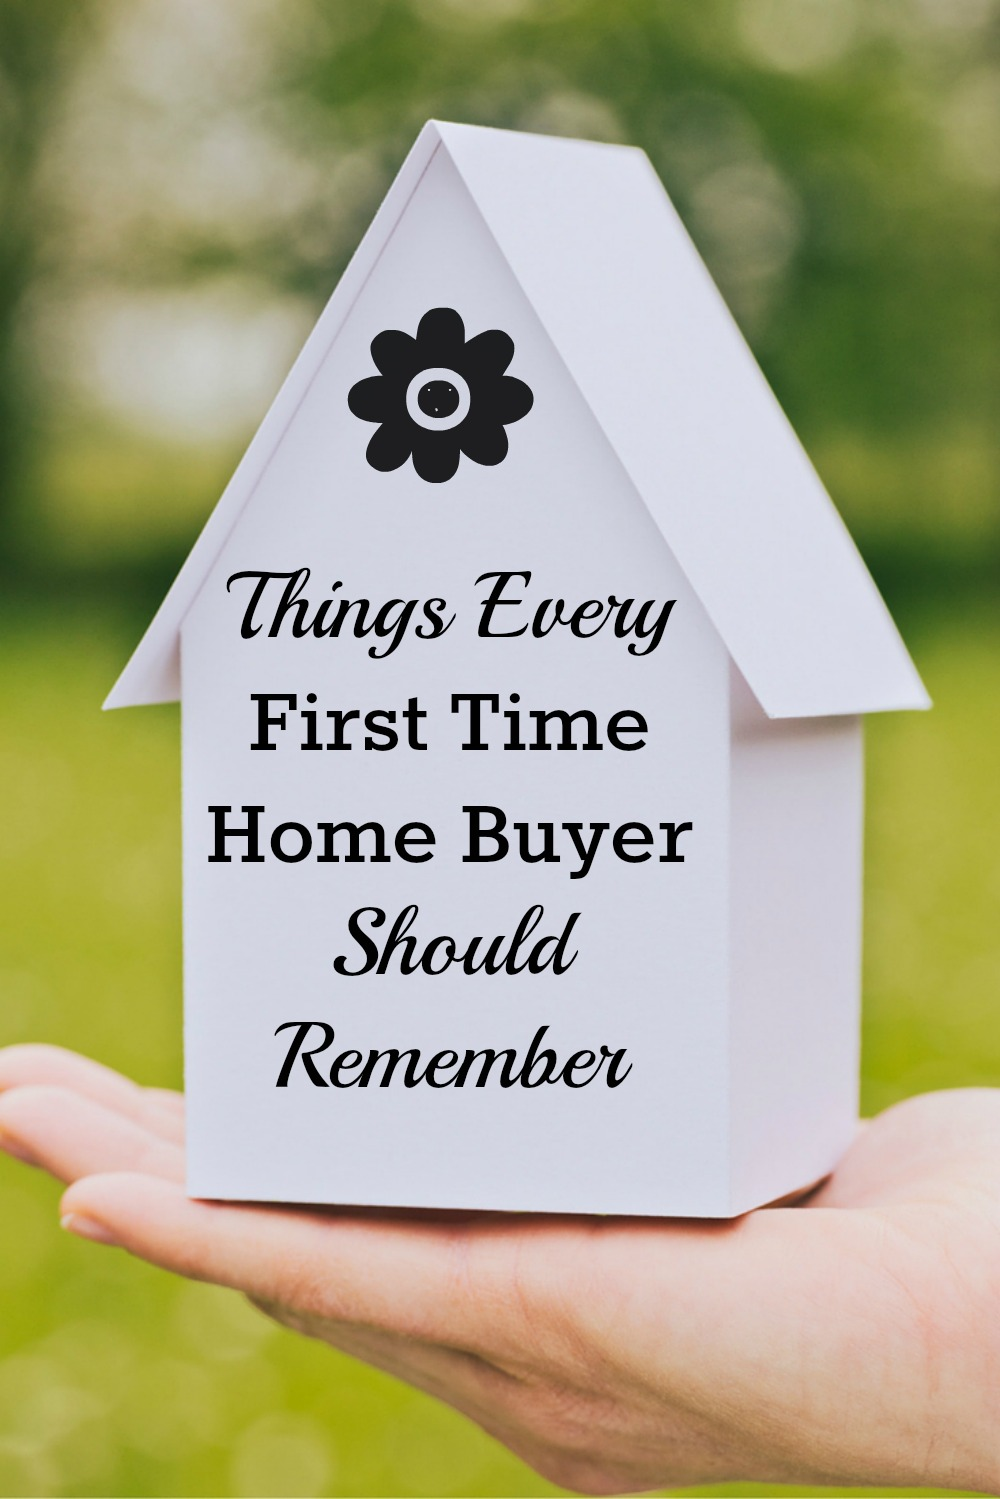 best ideas about time home buyers on things every time home buyer should on 25